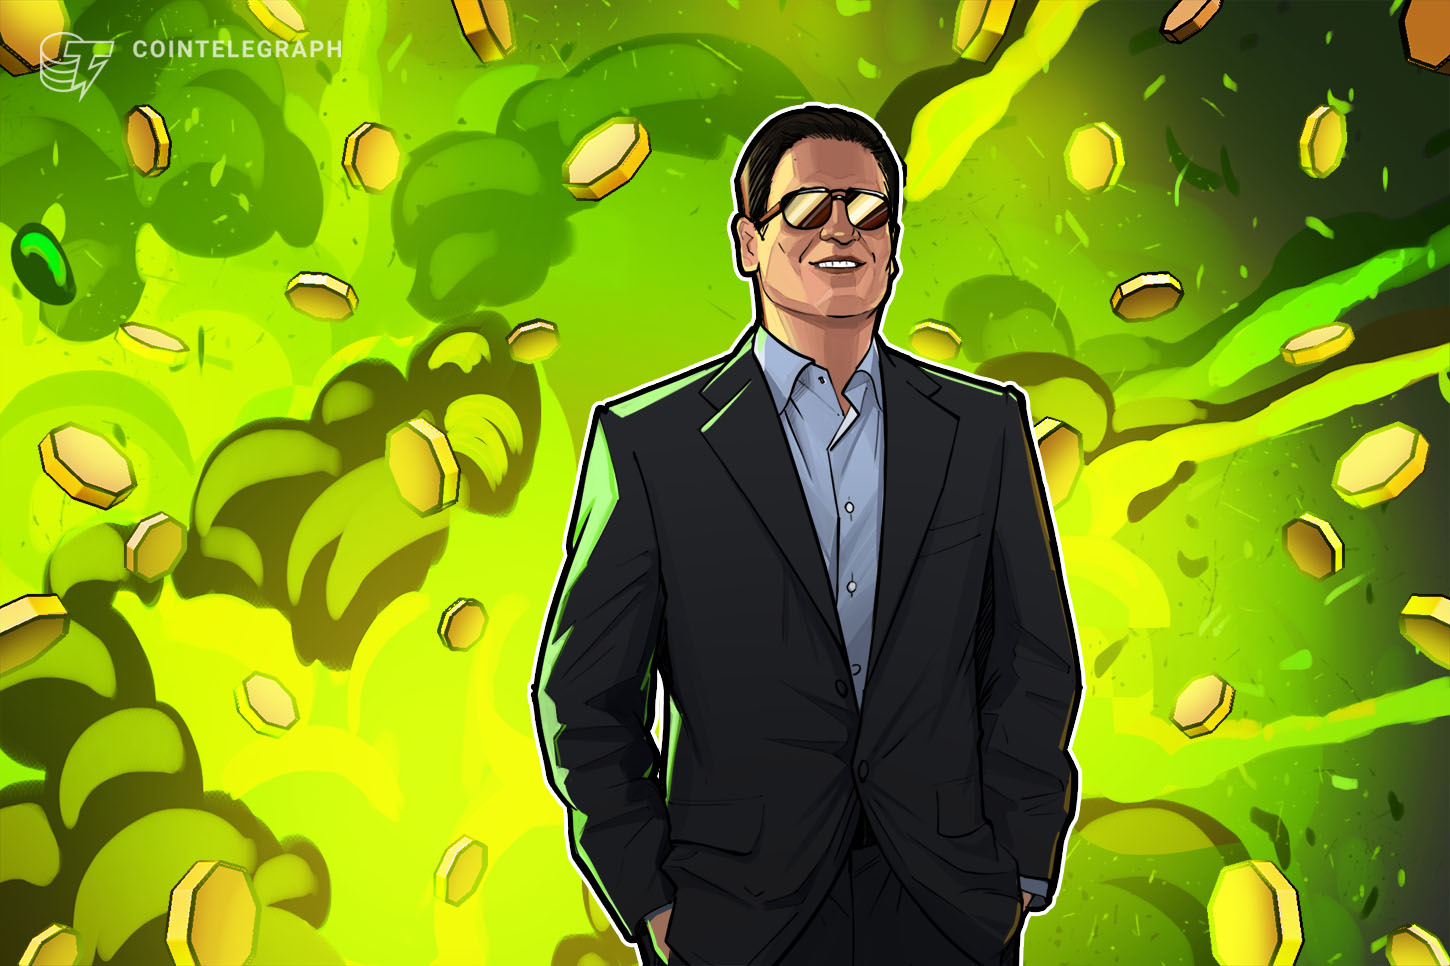 Mark Cuban likens shutting off crypto growth to stopping e-commerce in 1995